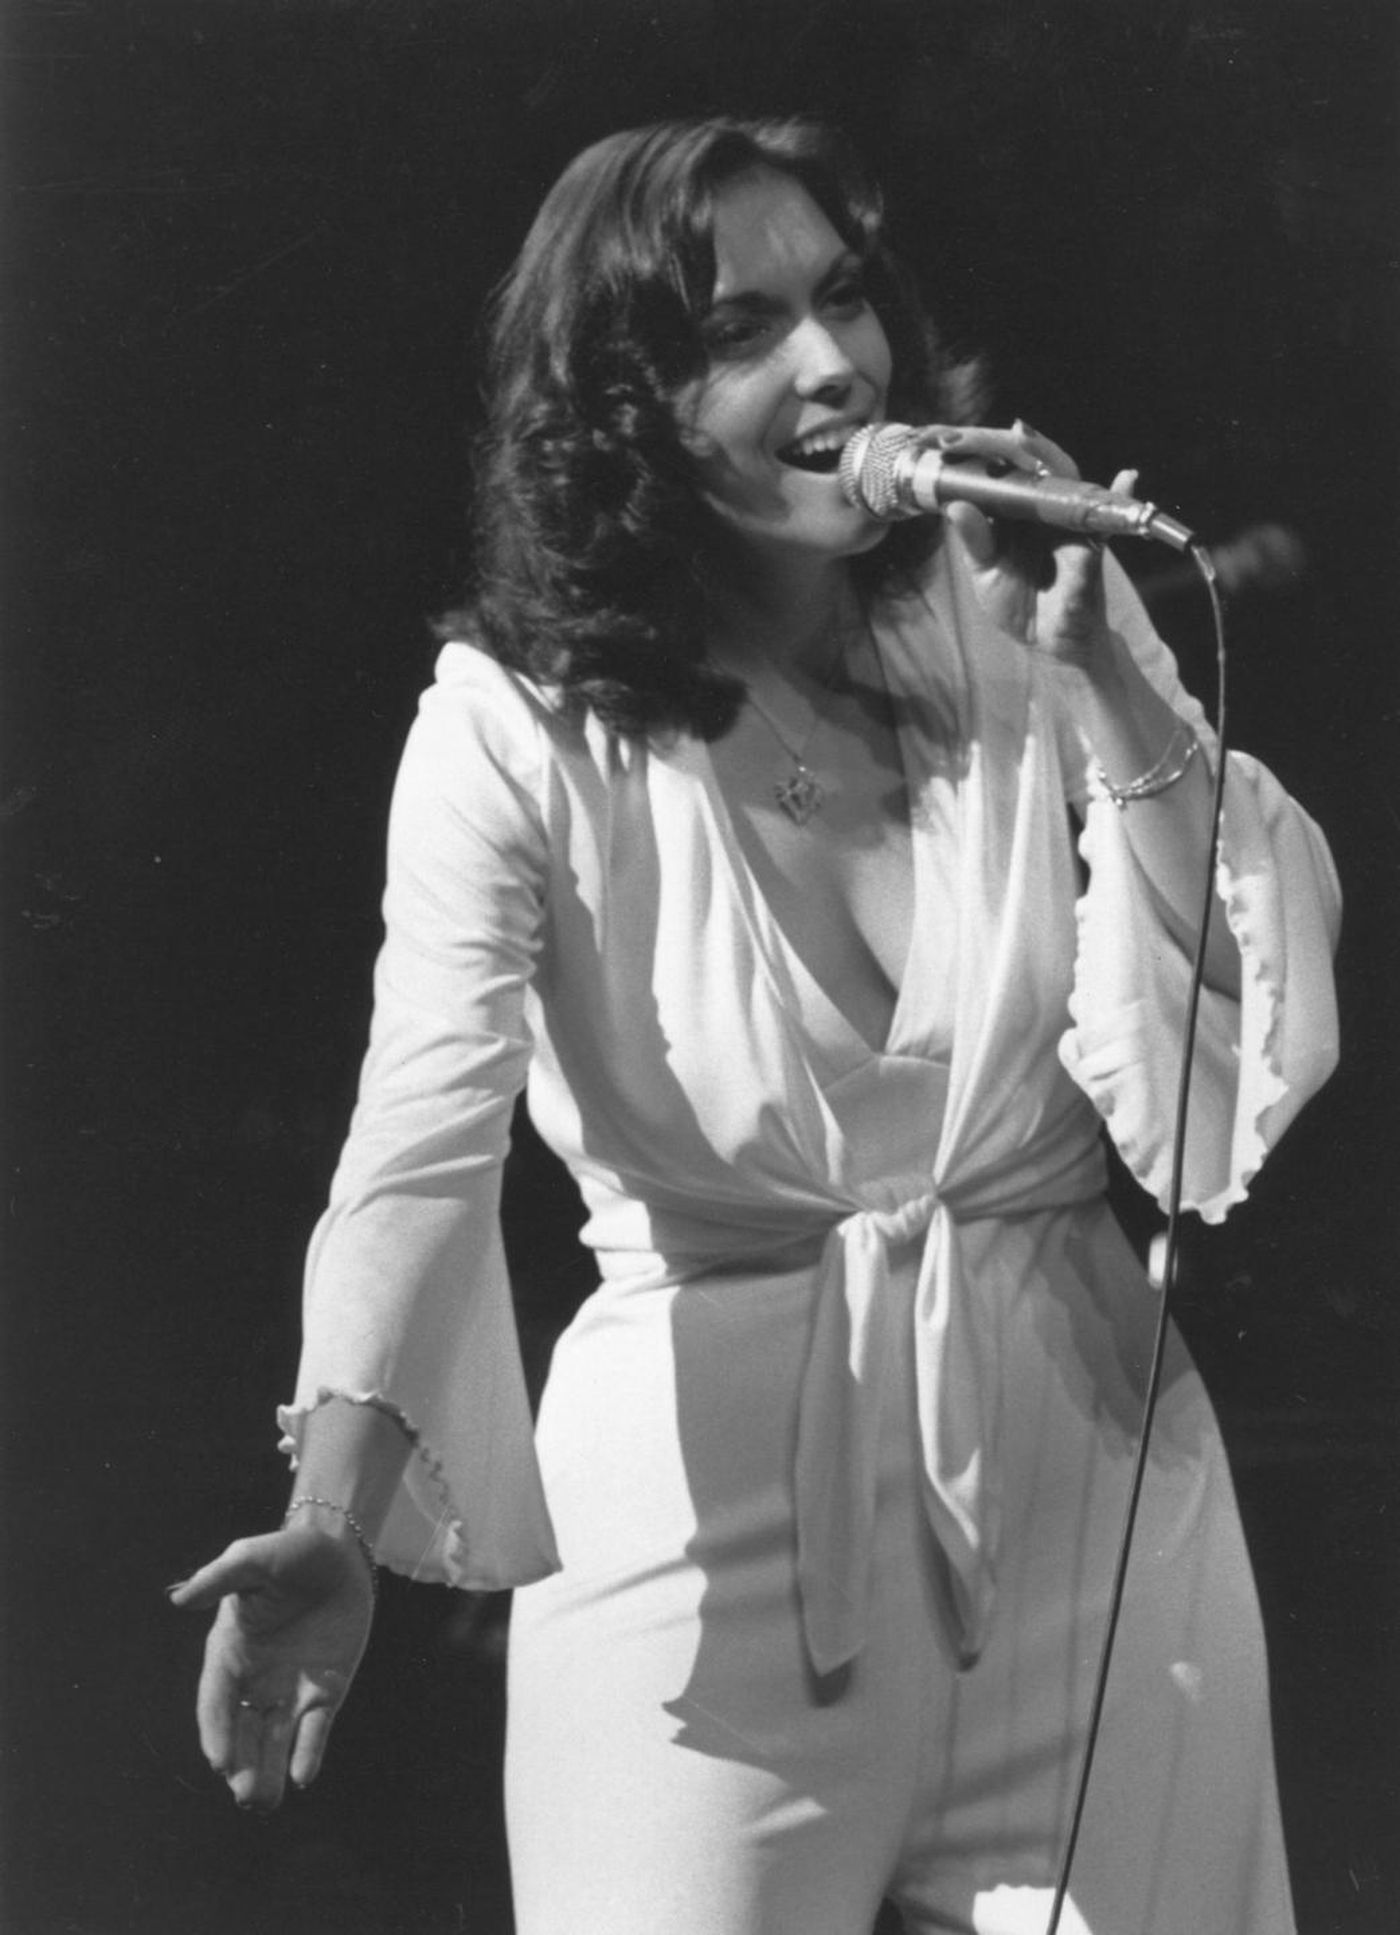 The day singer Karen Carpenter died in 1983   NY Daily News The day singer Karen Carpenter died in 1983